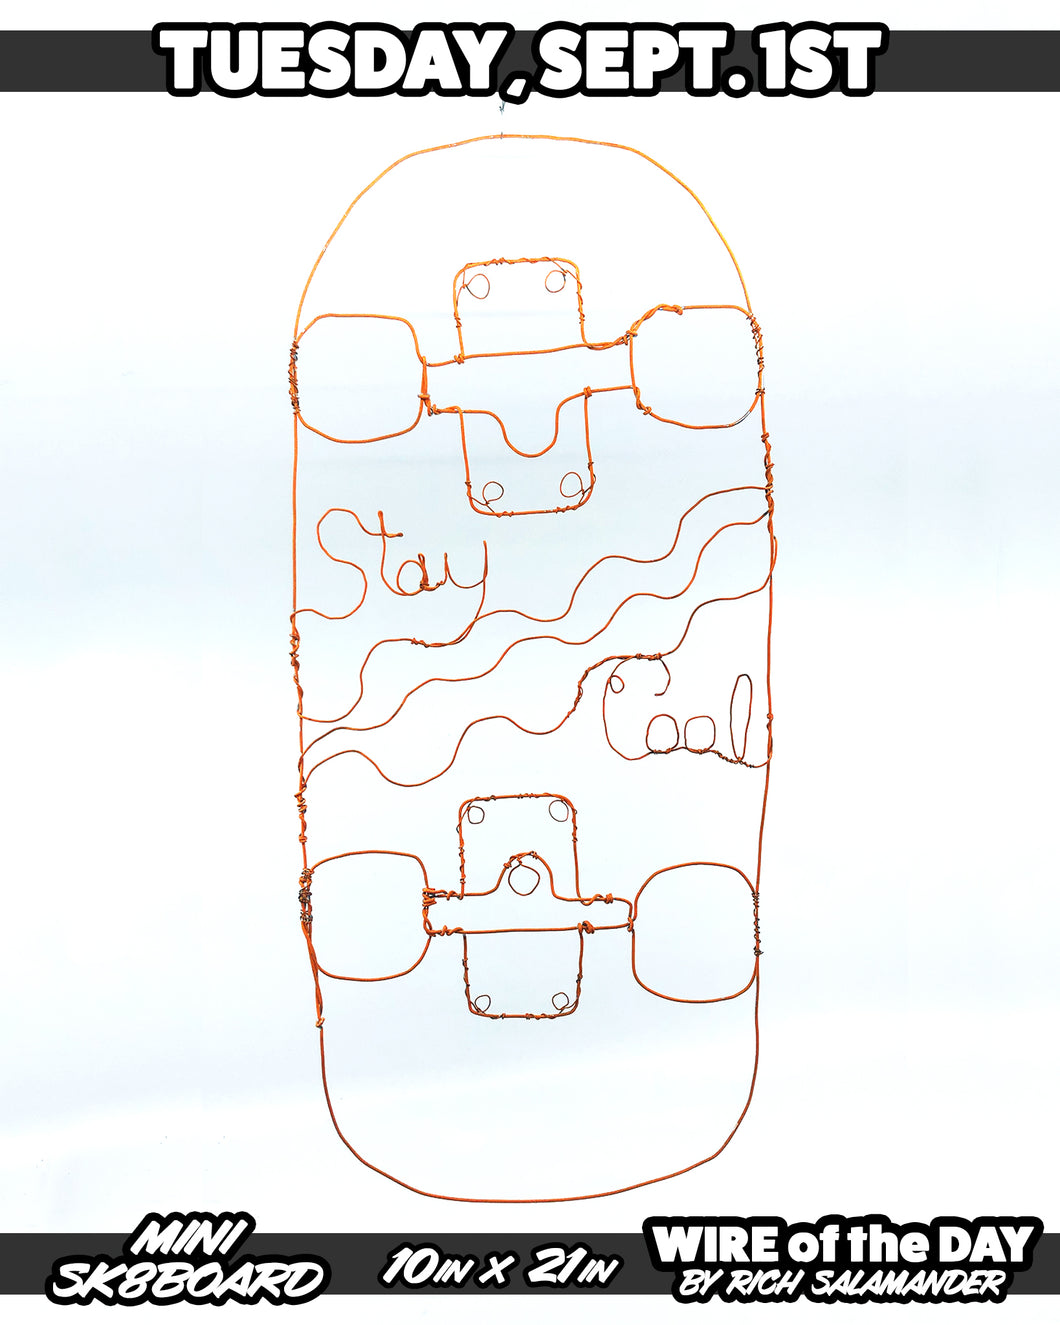 WIRE of the DAY MINI SK8BOARD